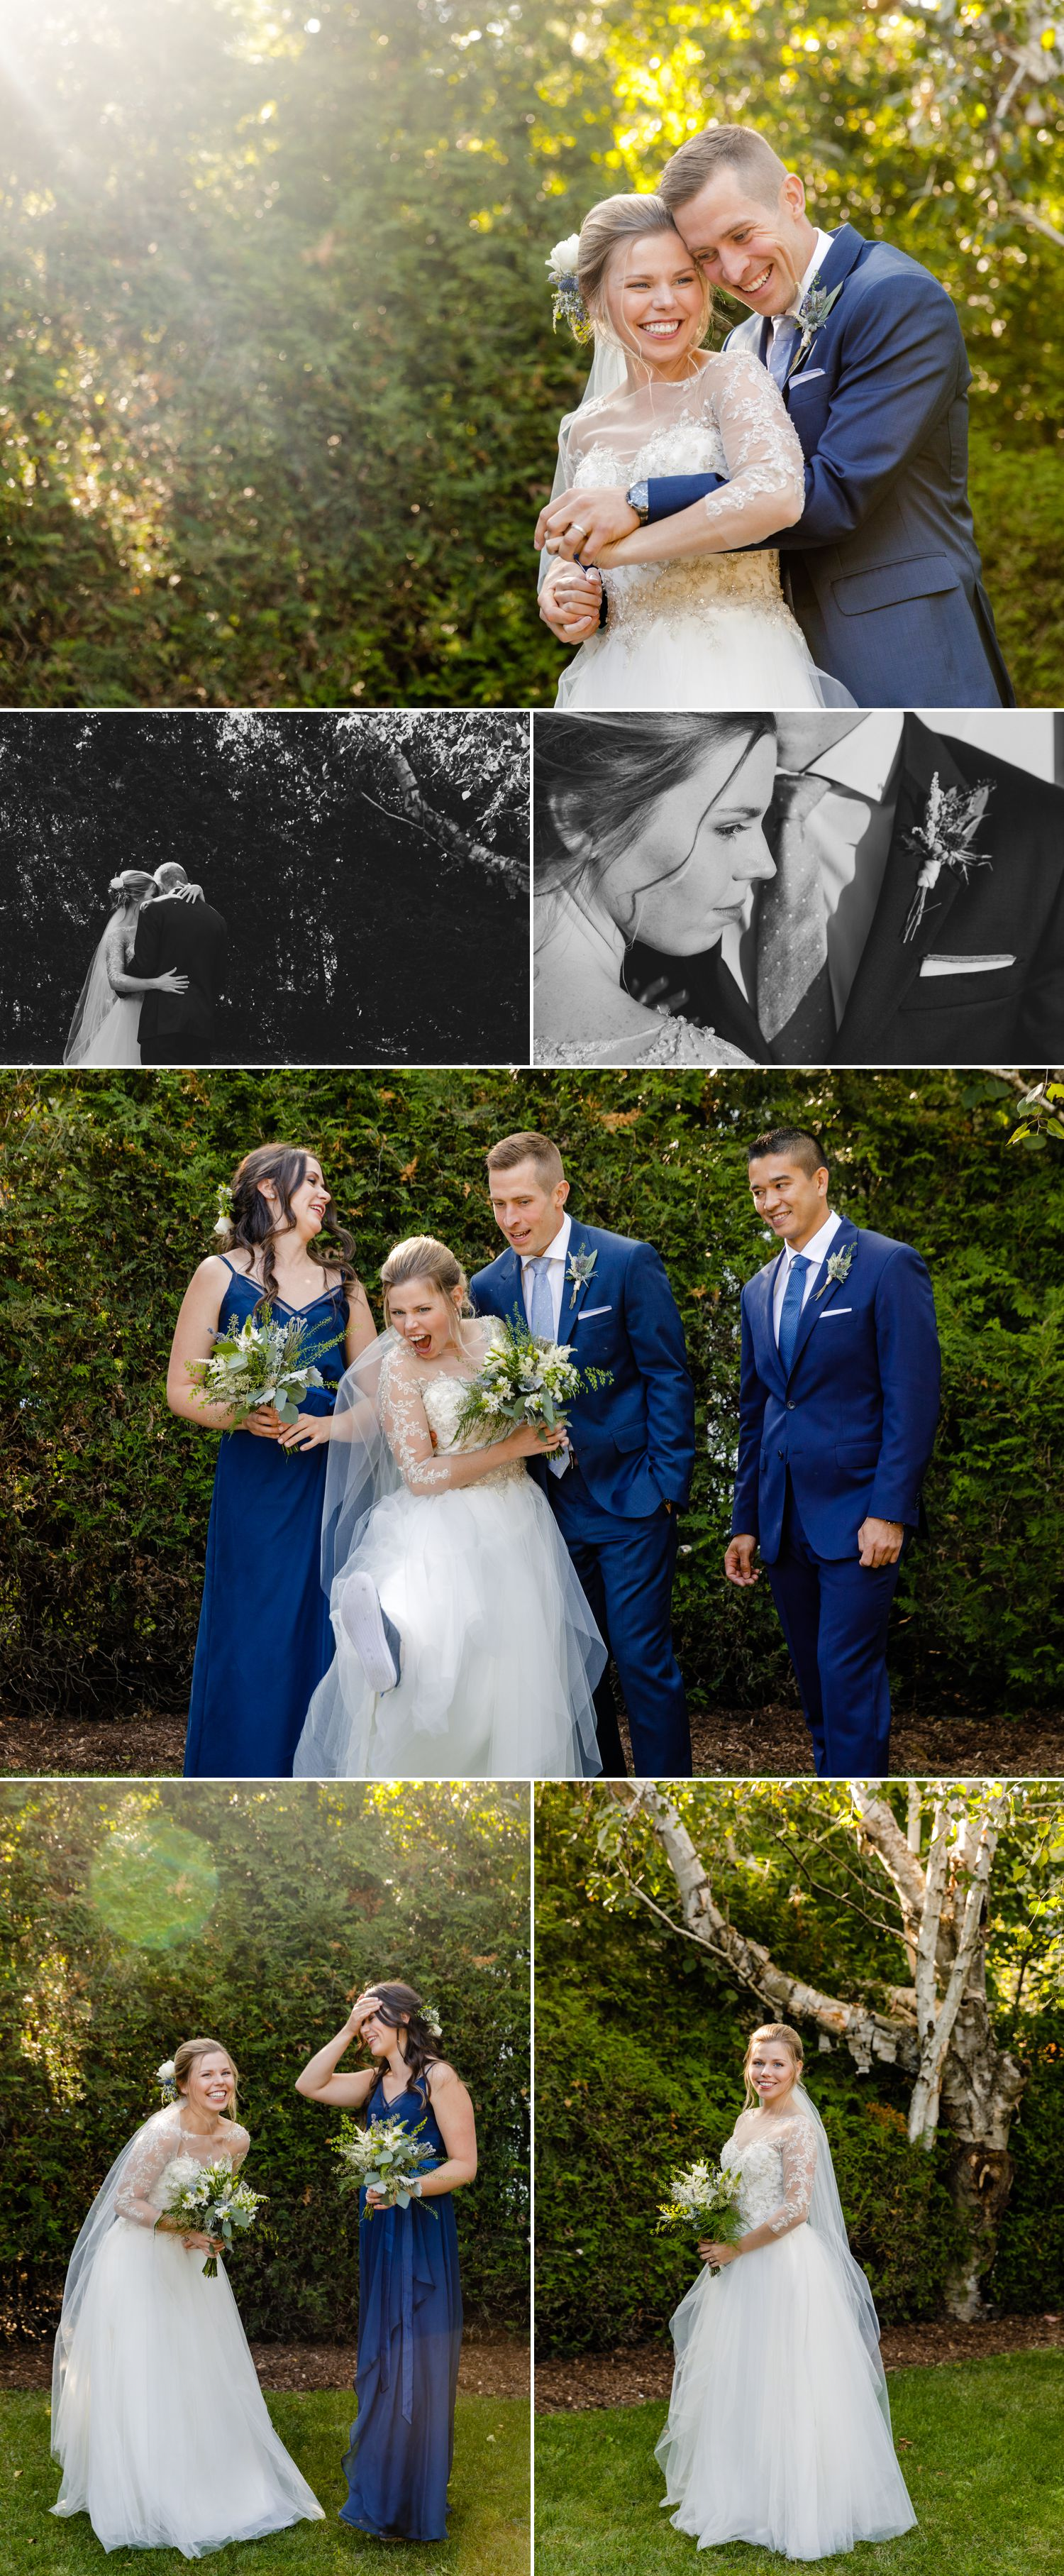 Portraits of the bride and groom and their wedding party after their intimate backyard wedding in Ottawa